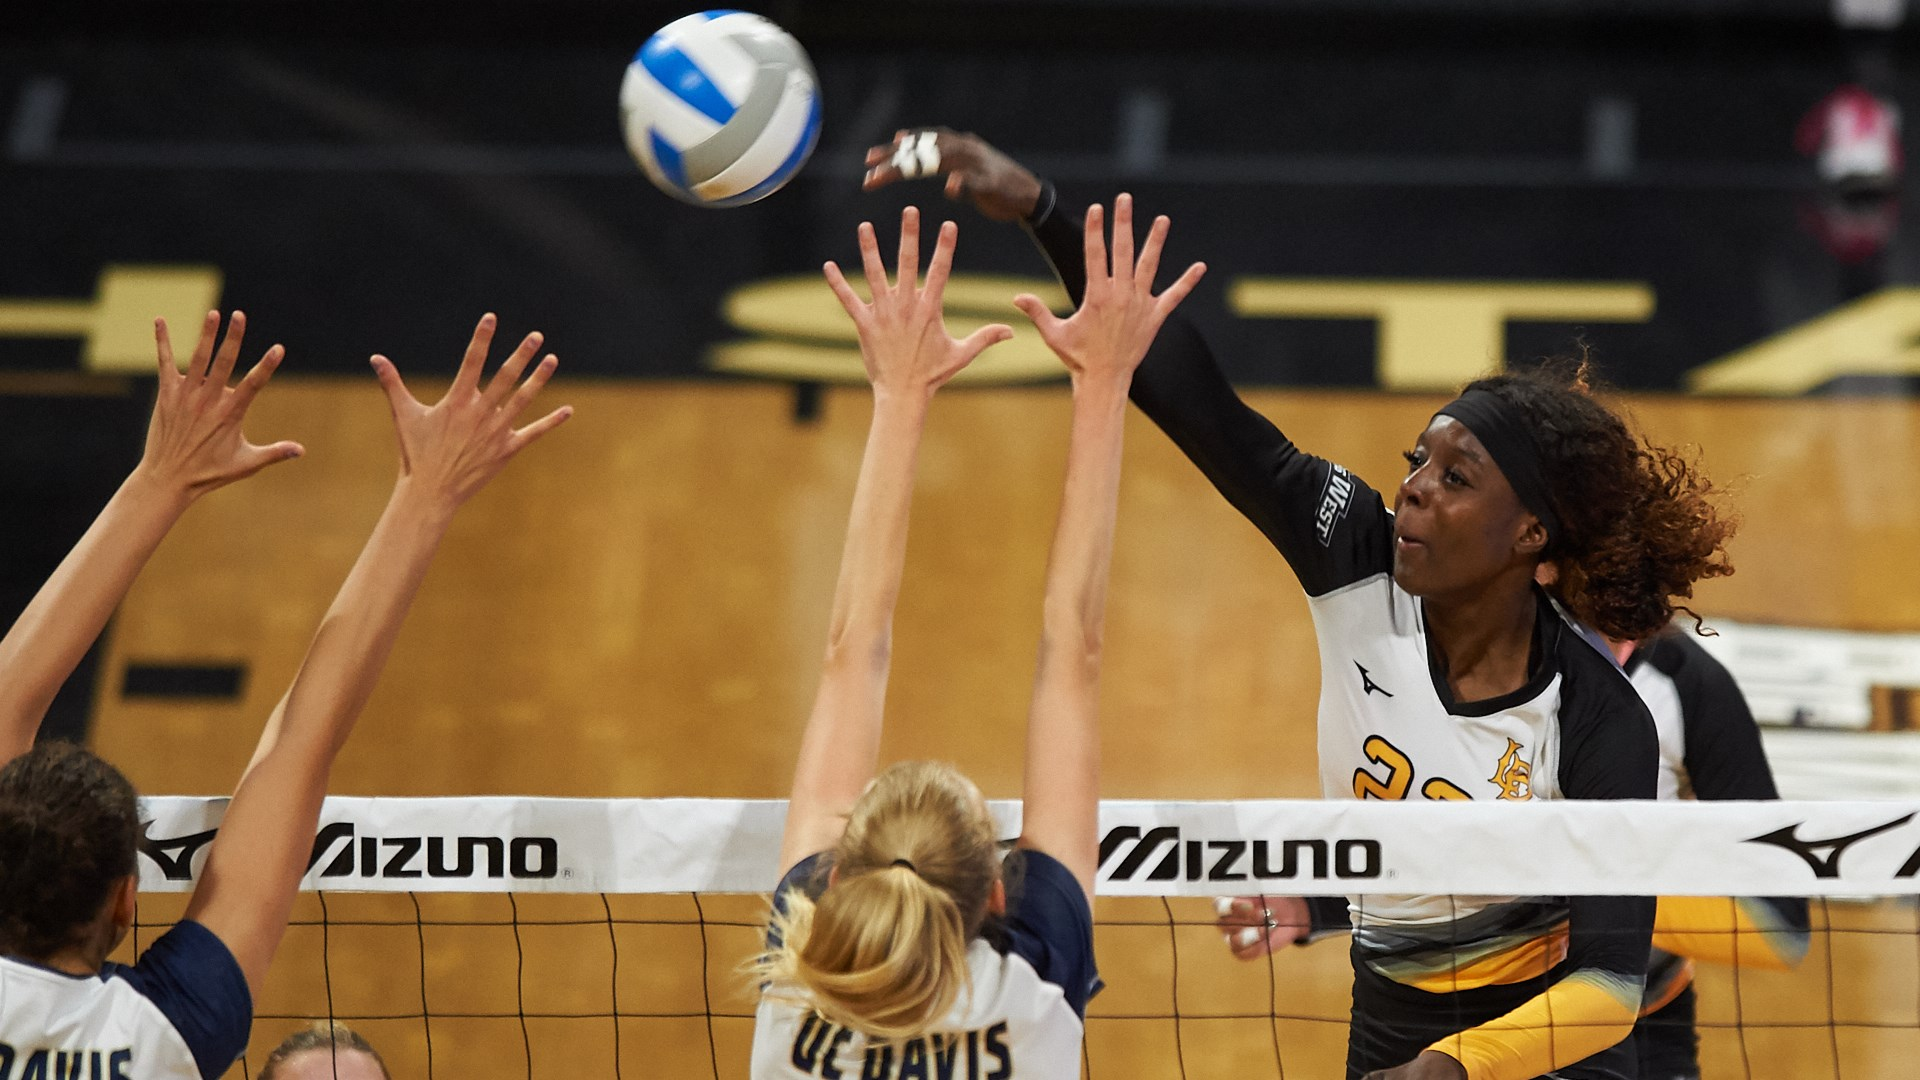 A Pair Of Lbsu Women S Volleyball Players To Participate In Usa Volleyball National Team Tryouts Long Beach State University Athletics